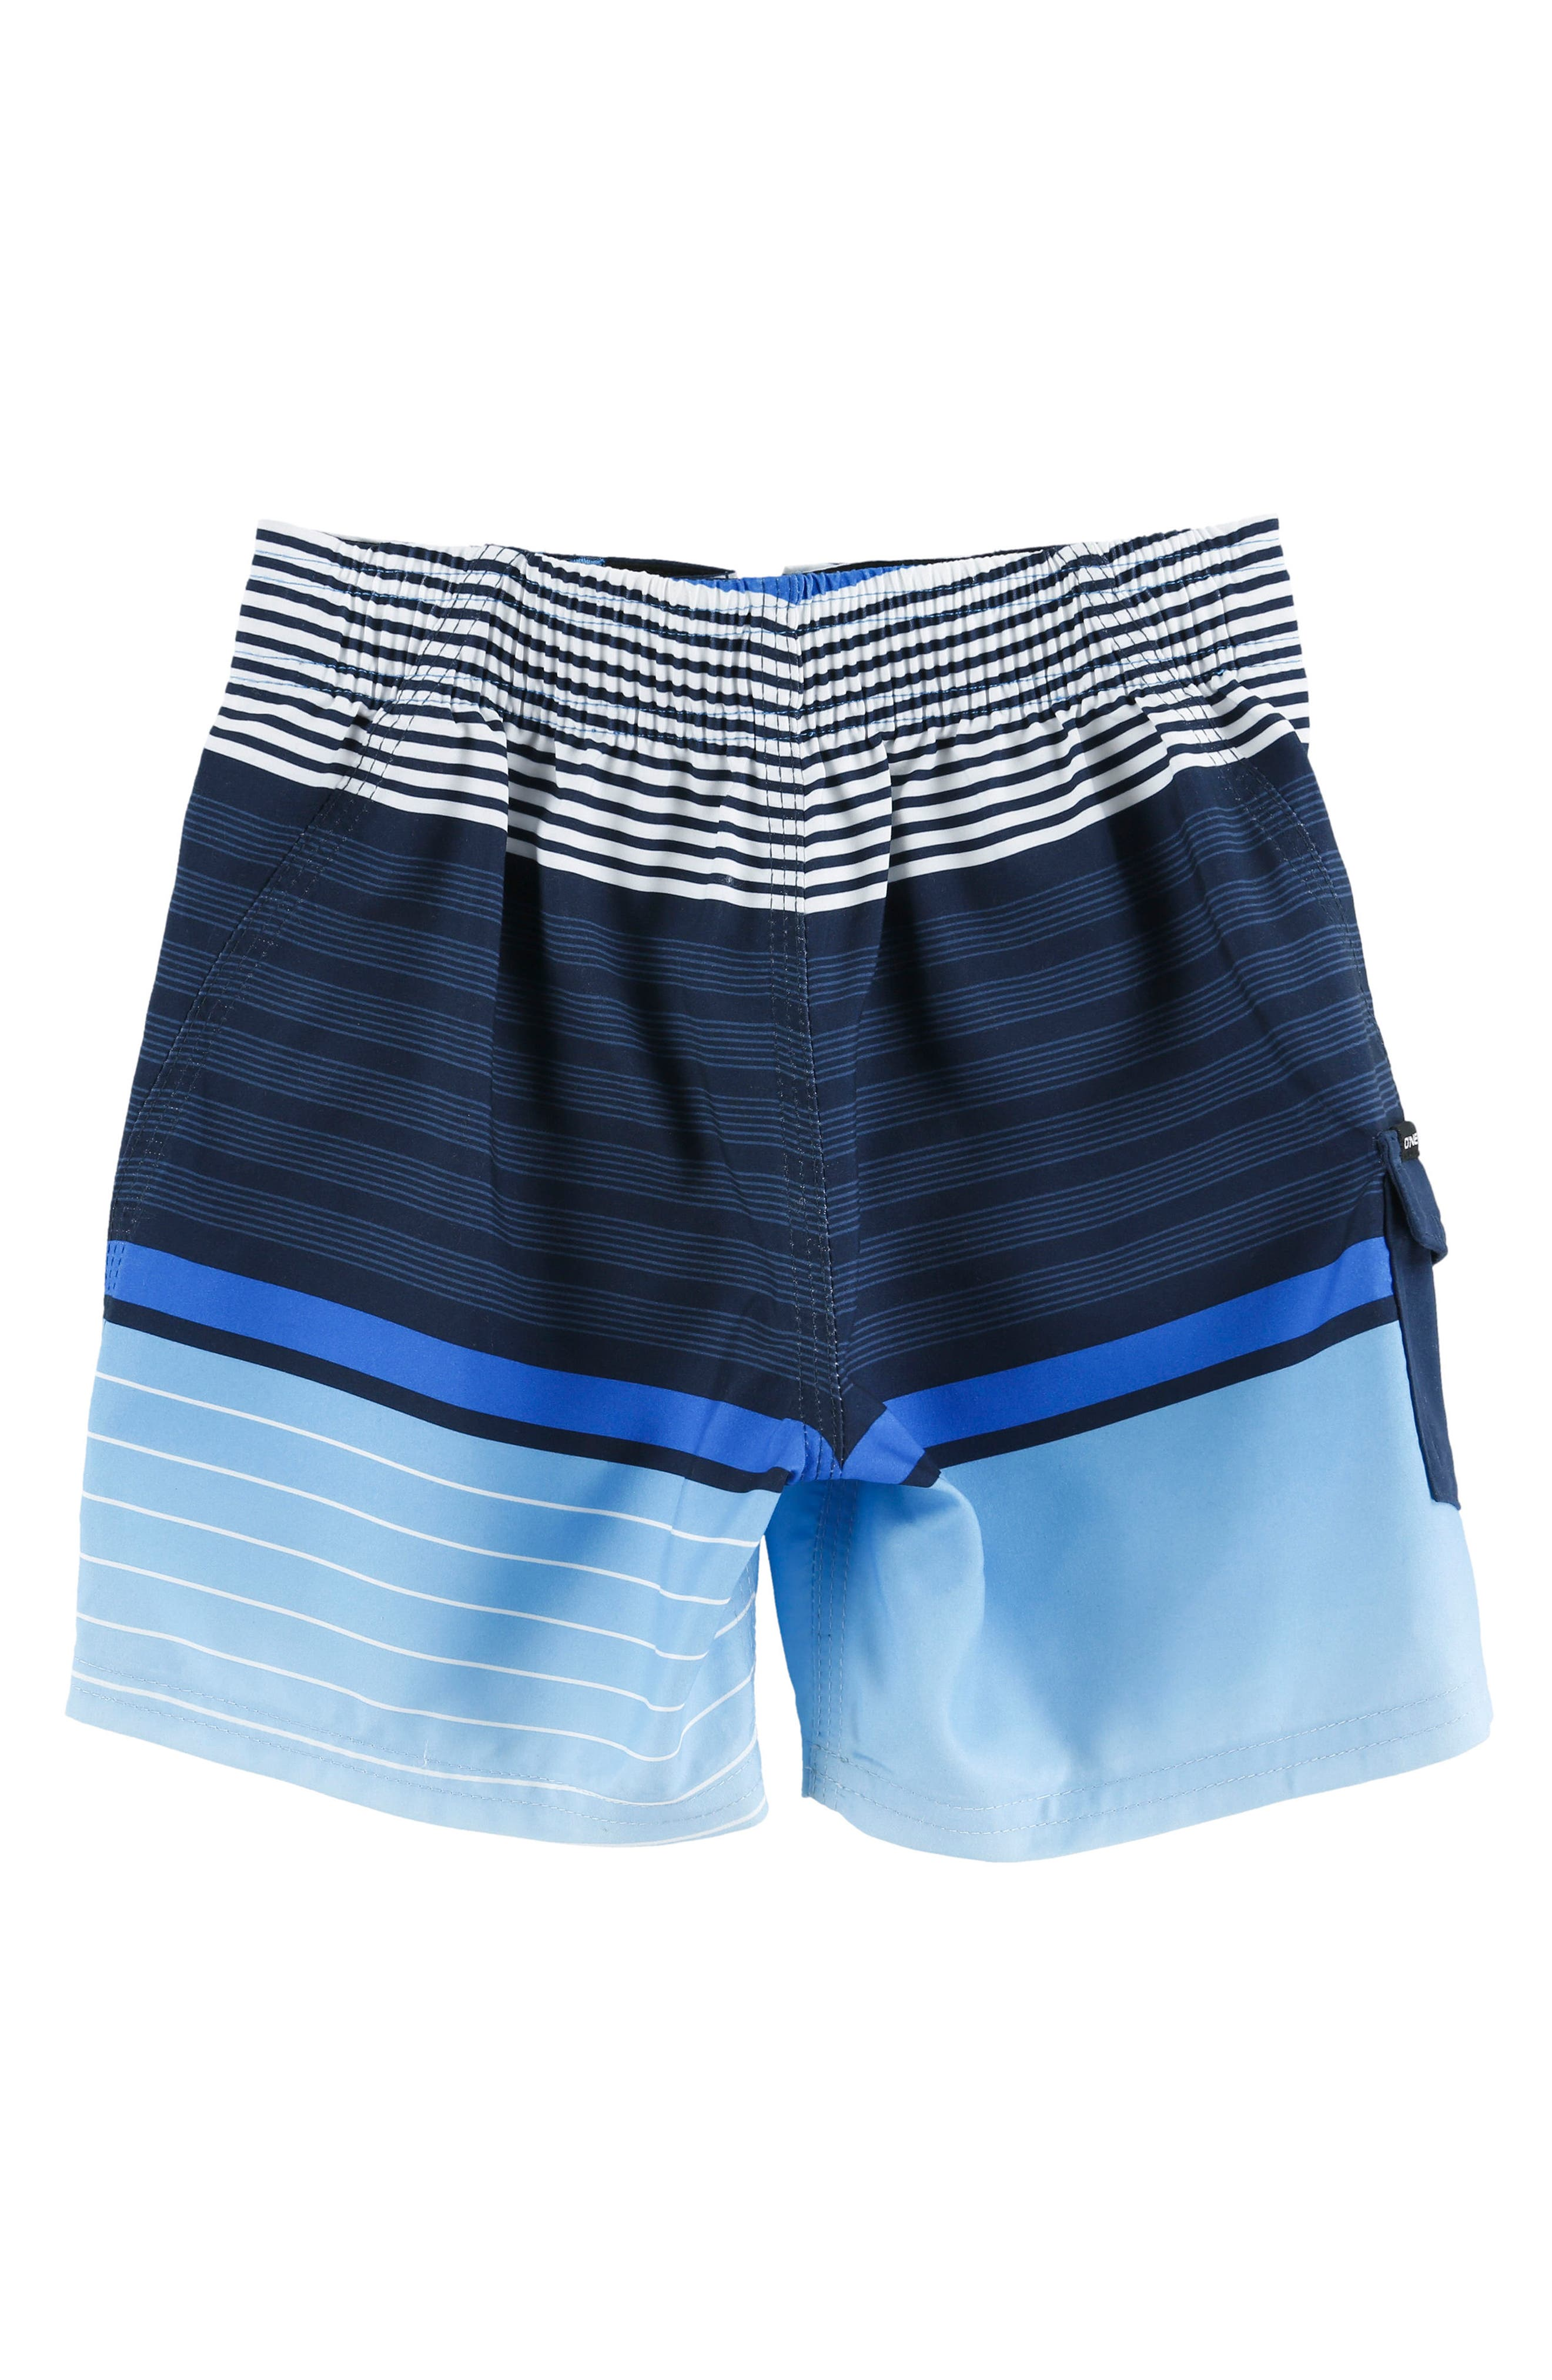 Alternate Image 2  - O'Neill Lennox Stripe Board Shorts (Toddler Boys)